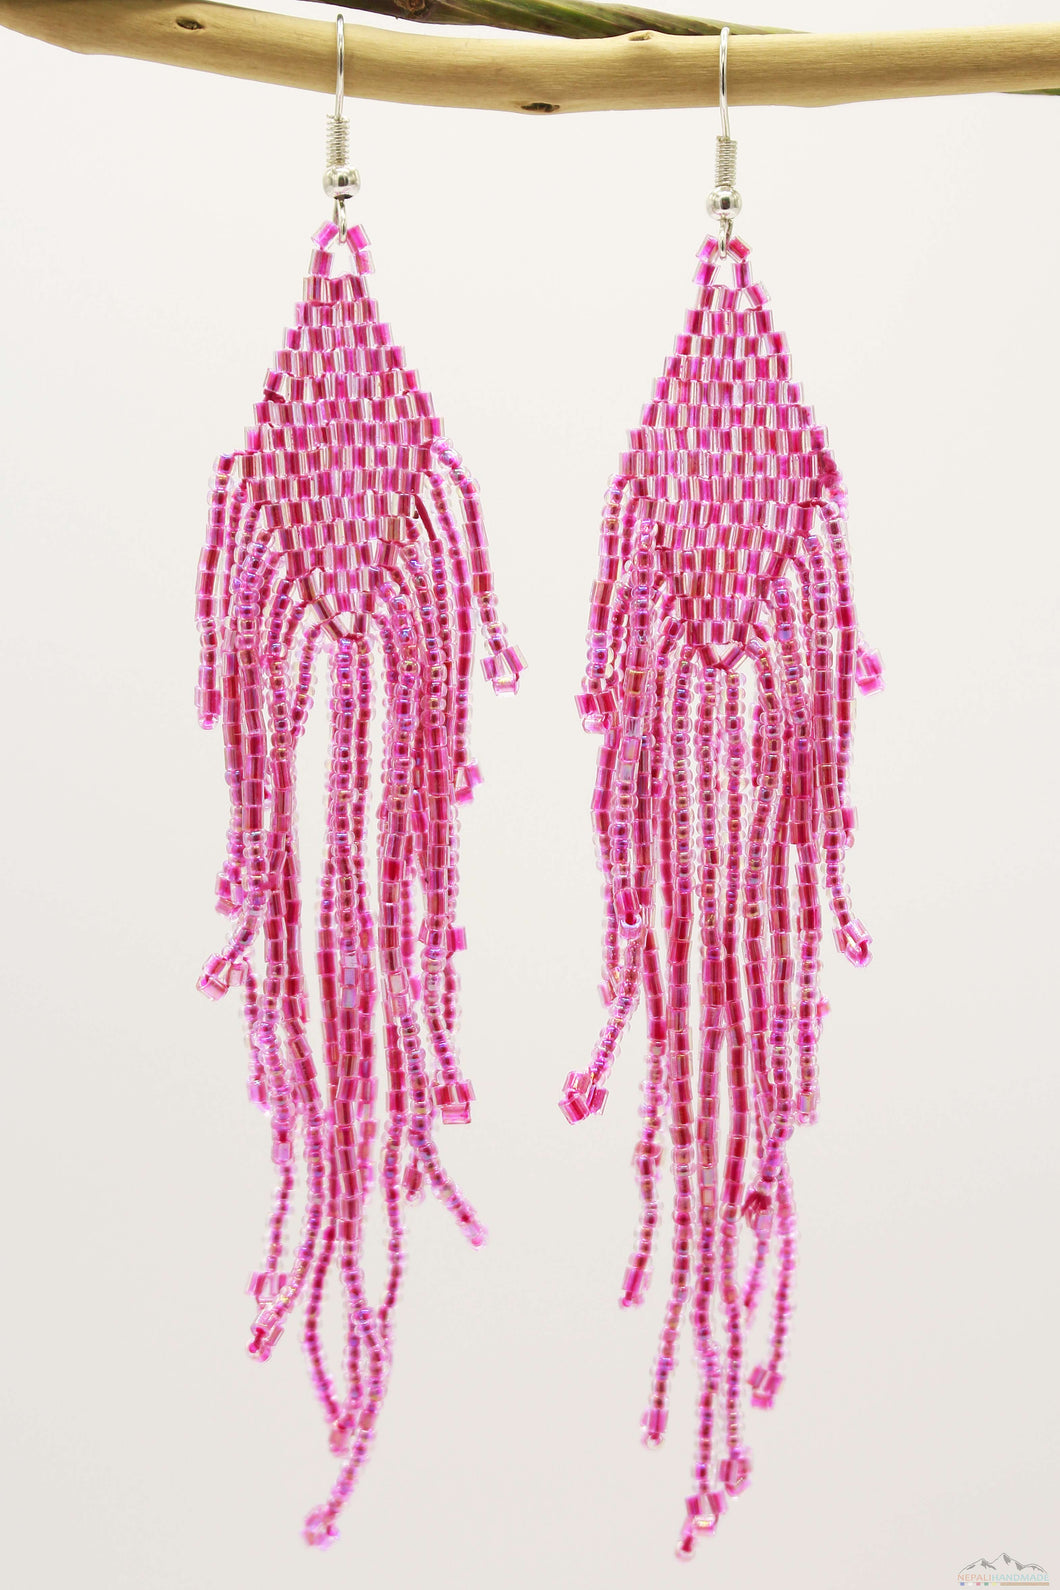 Hot Pink Glass Beads Rhombus Chandelier Earring for Women